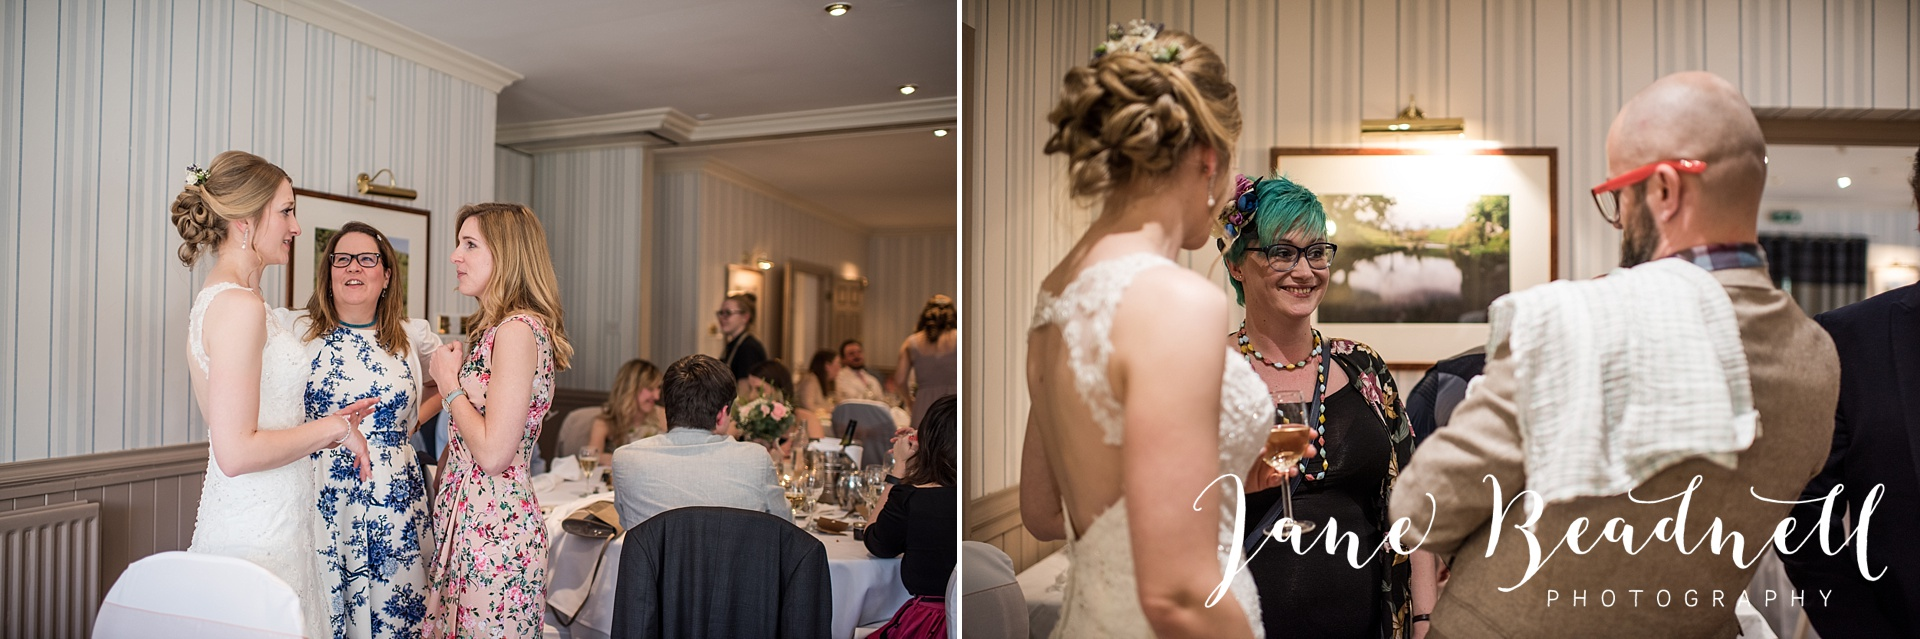 Otley Chevin Lodge wedding photography by Jane Beadnell Photography Leeds_0158